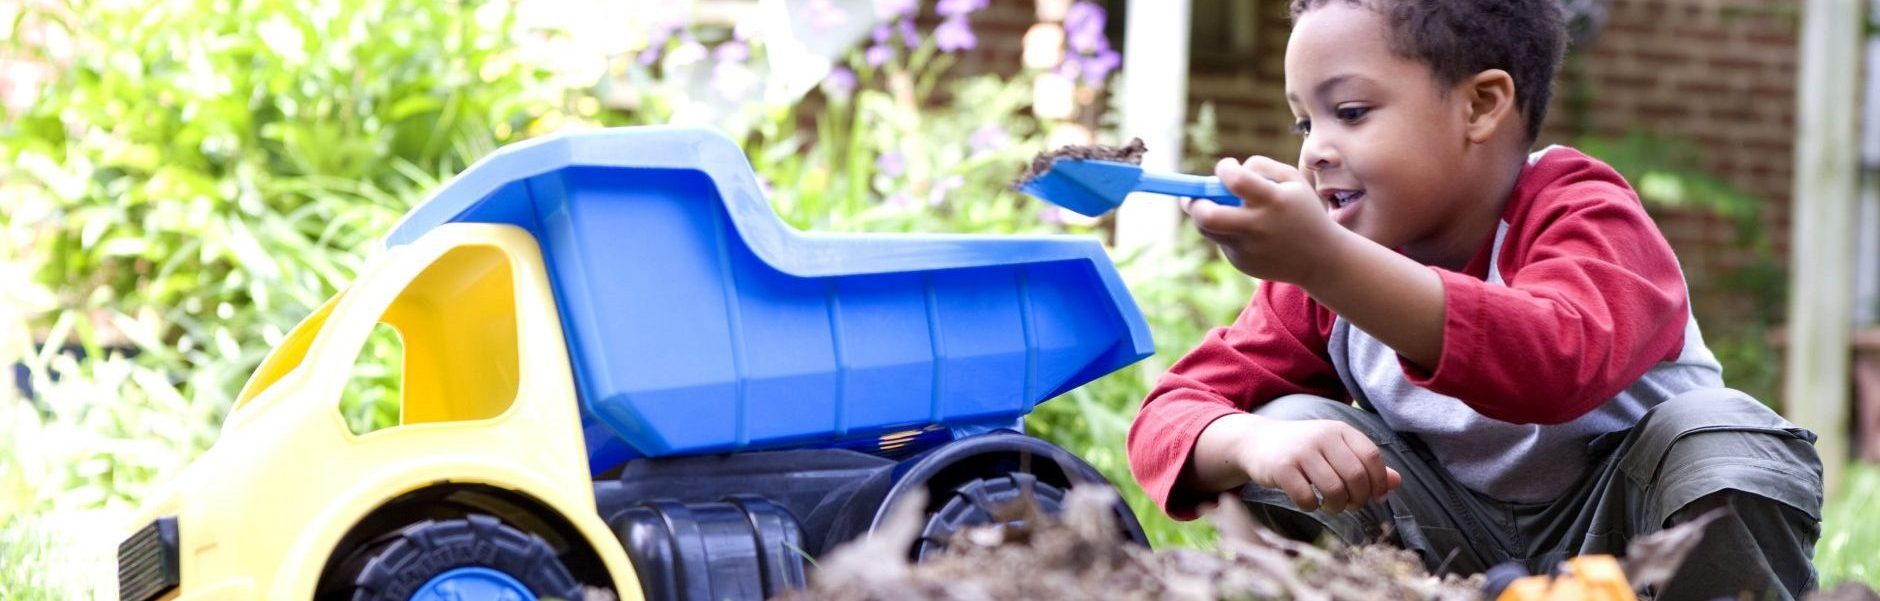 boy playing in the dirt with toy dump truck